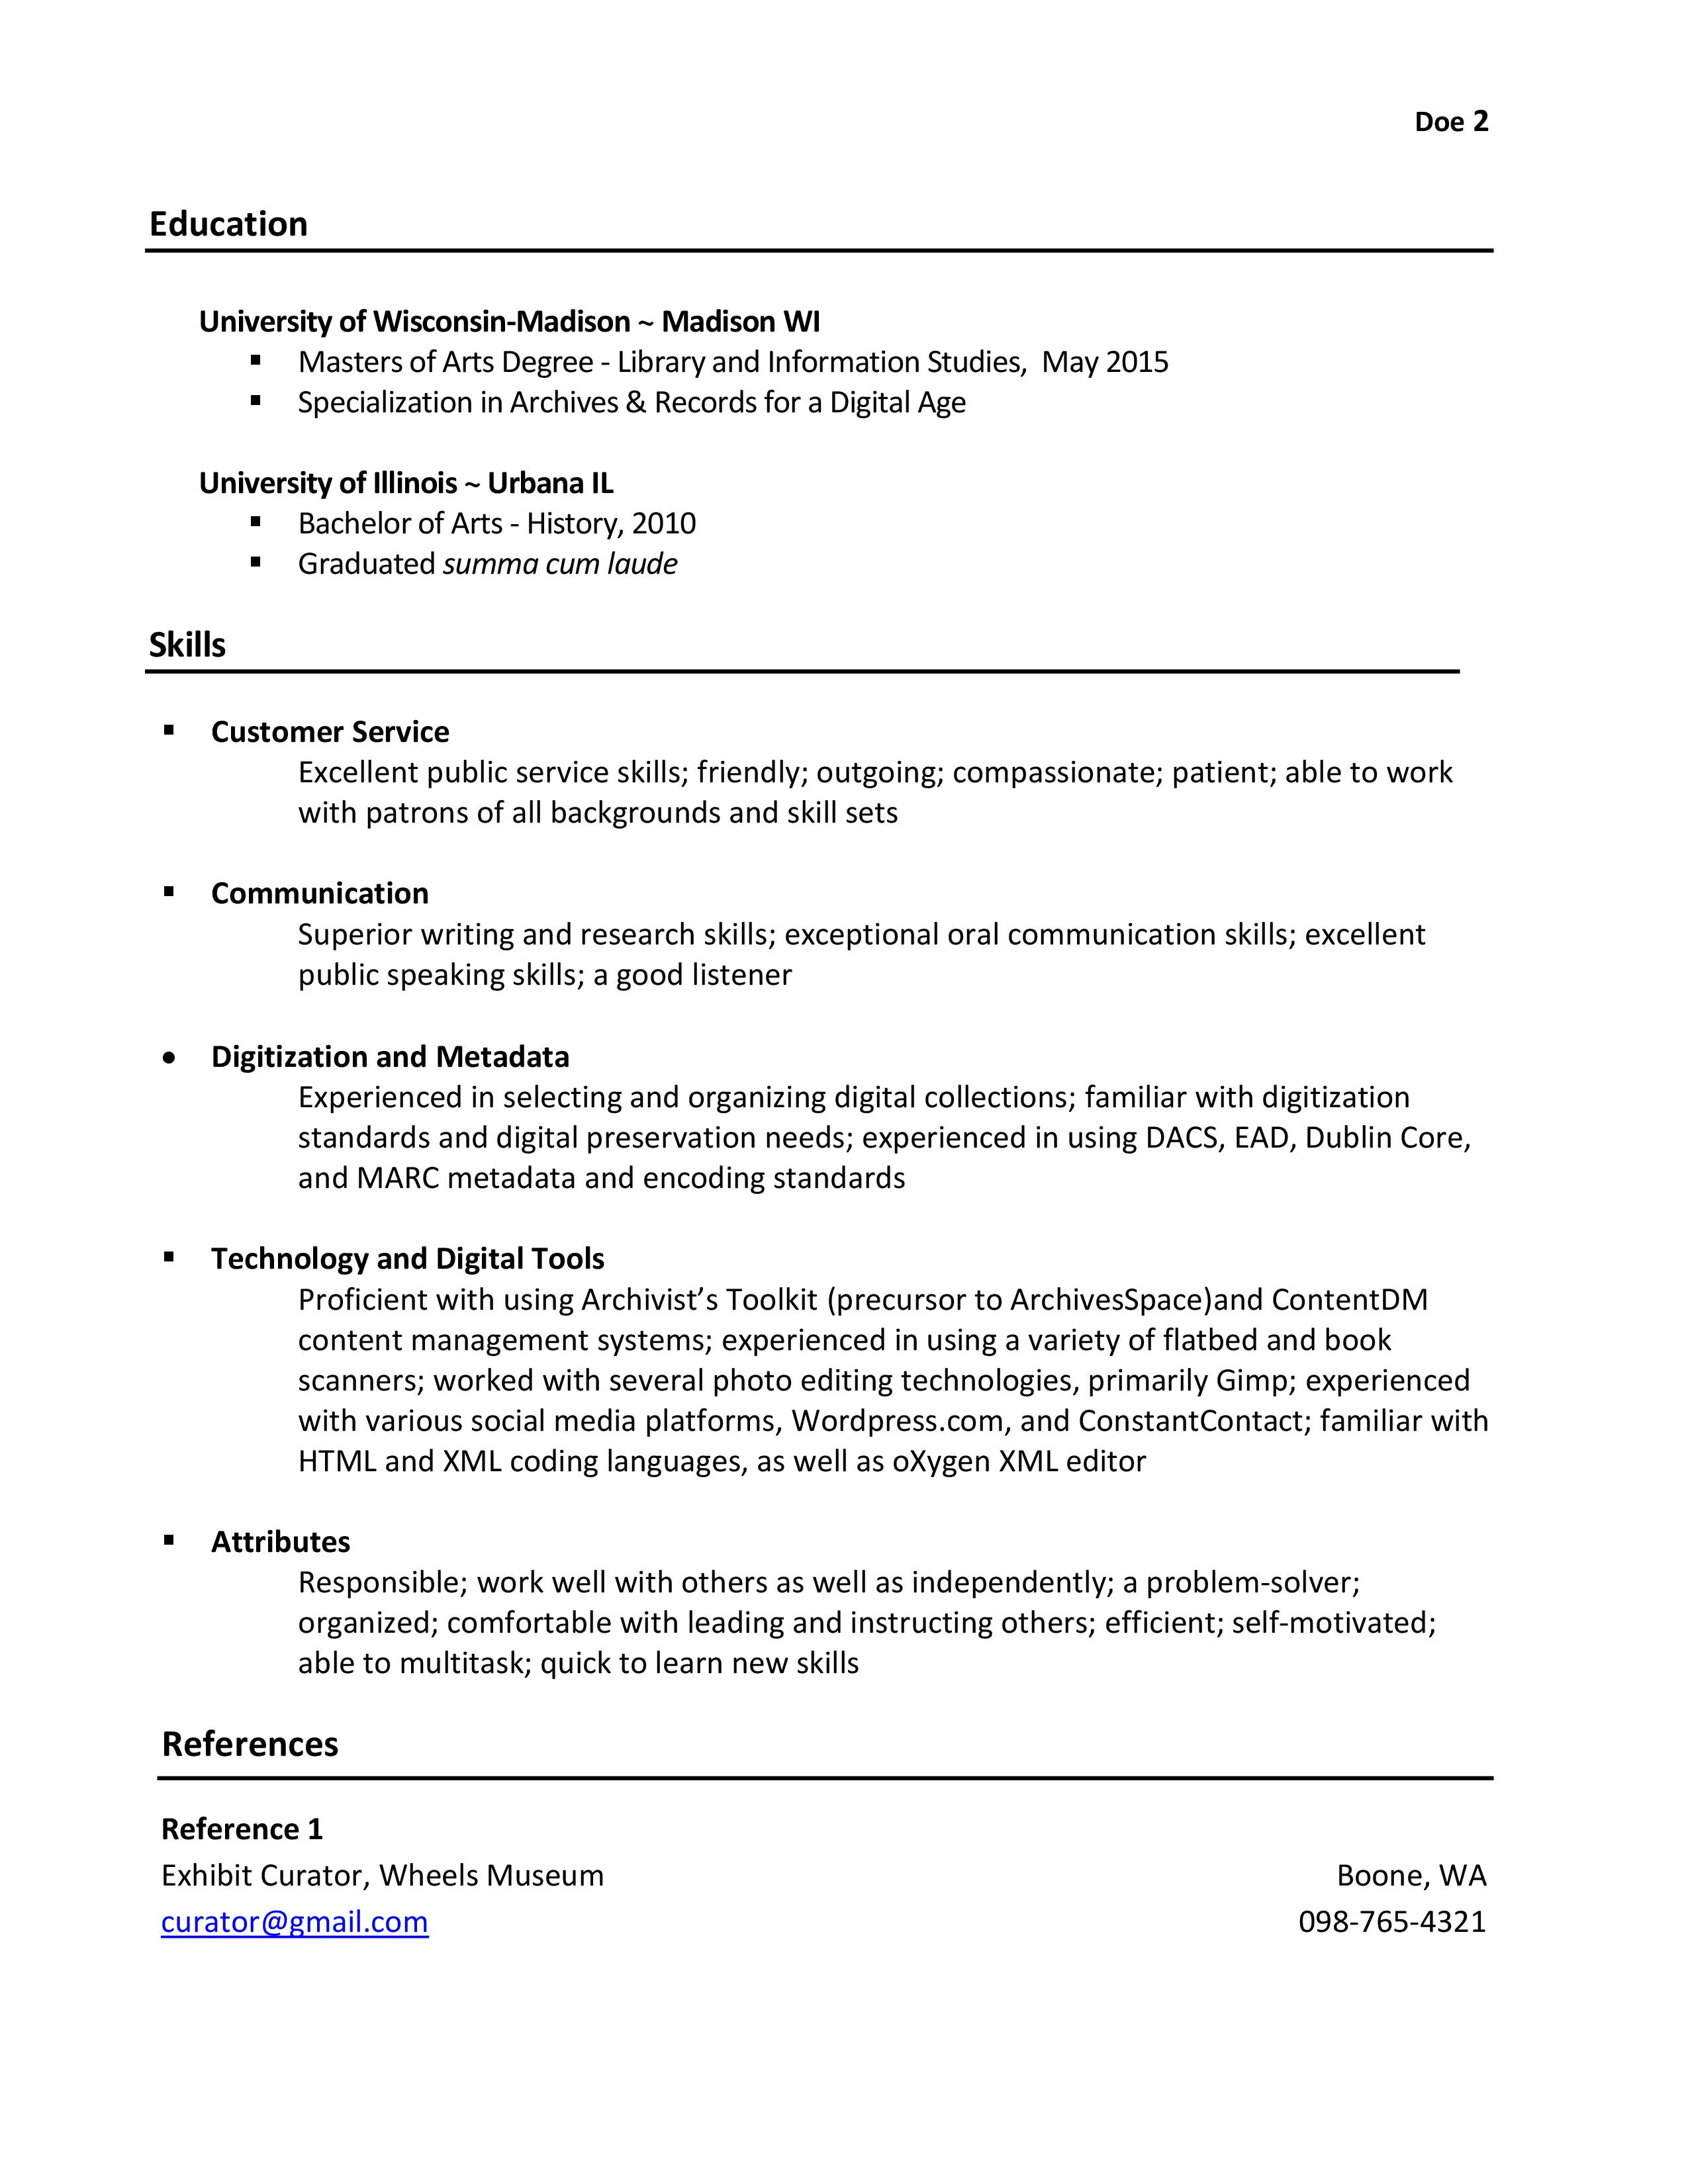 Hiring_Librarians_Cover_Letter Hiring_Librarians_Resume_JF_revised 0  Hiring_Librarians_Resume_JF_revised 1 Hiring_Librarians_Resume_JF_revised 2  Skills Section Resume Examples